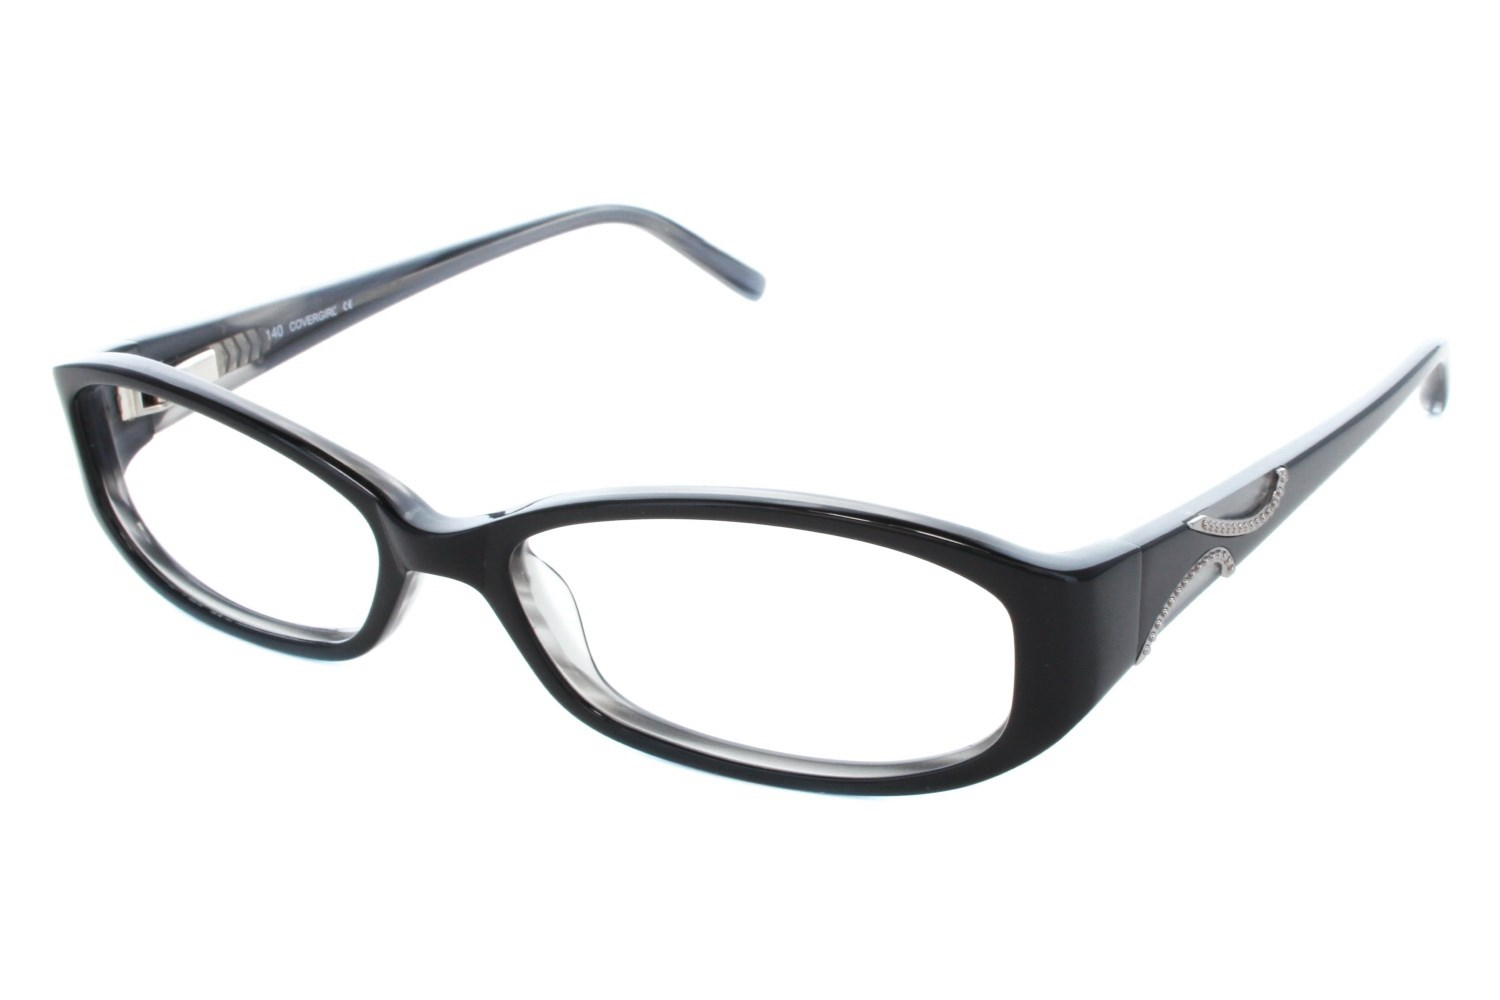 Covergirl CG0431 Prescription Eyeglasses Frames